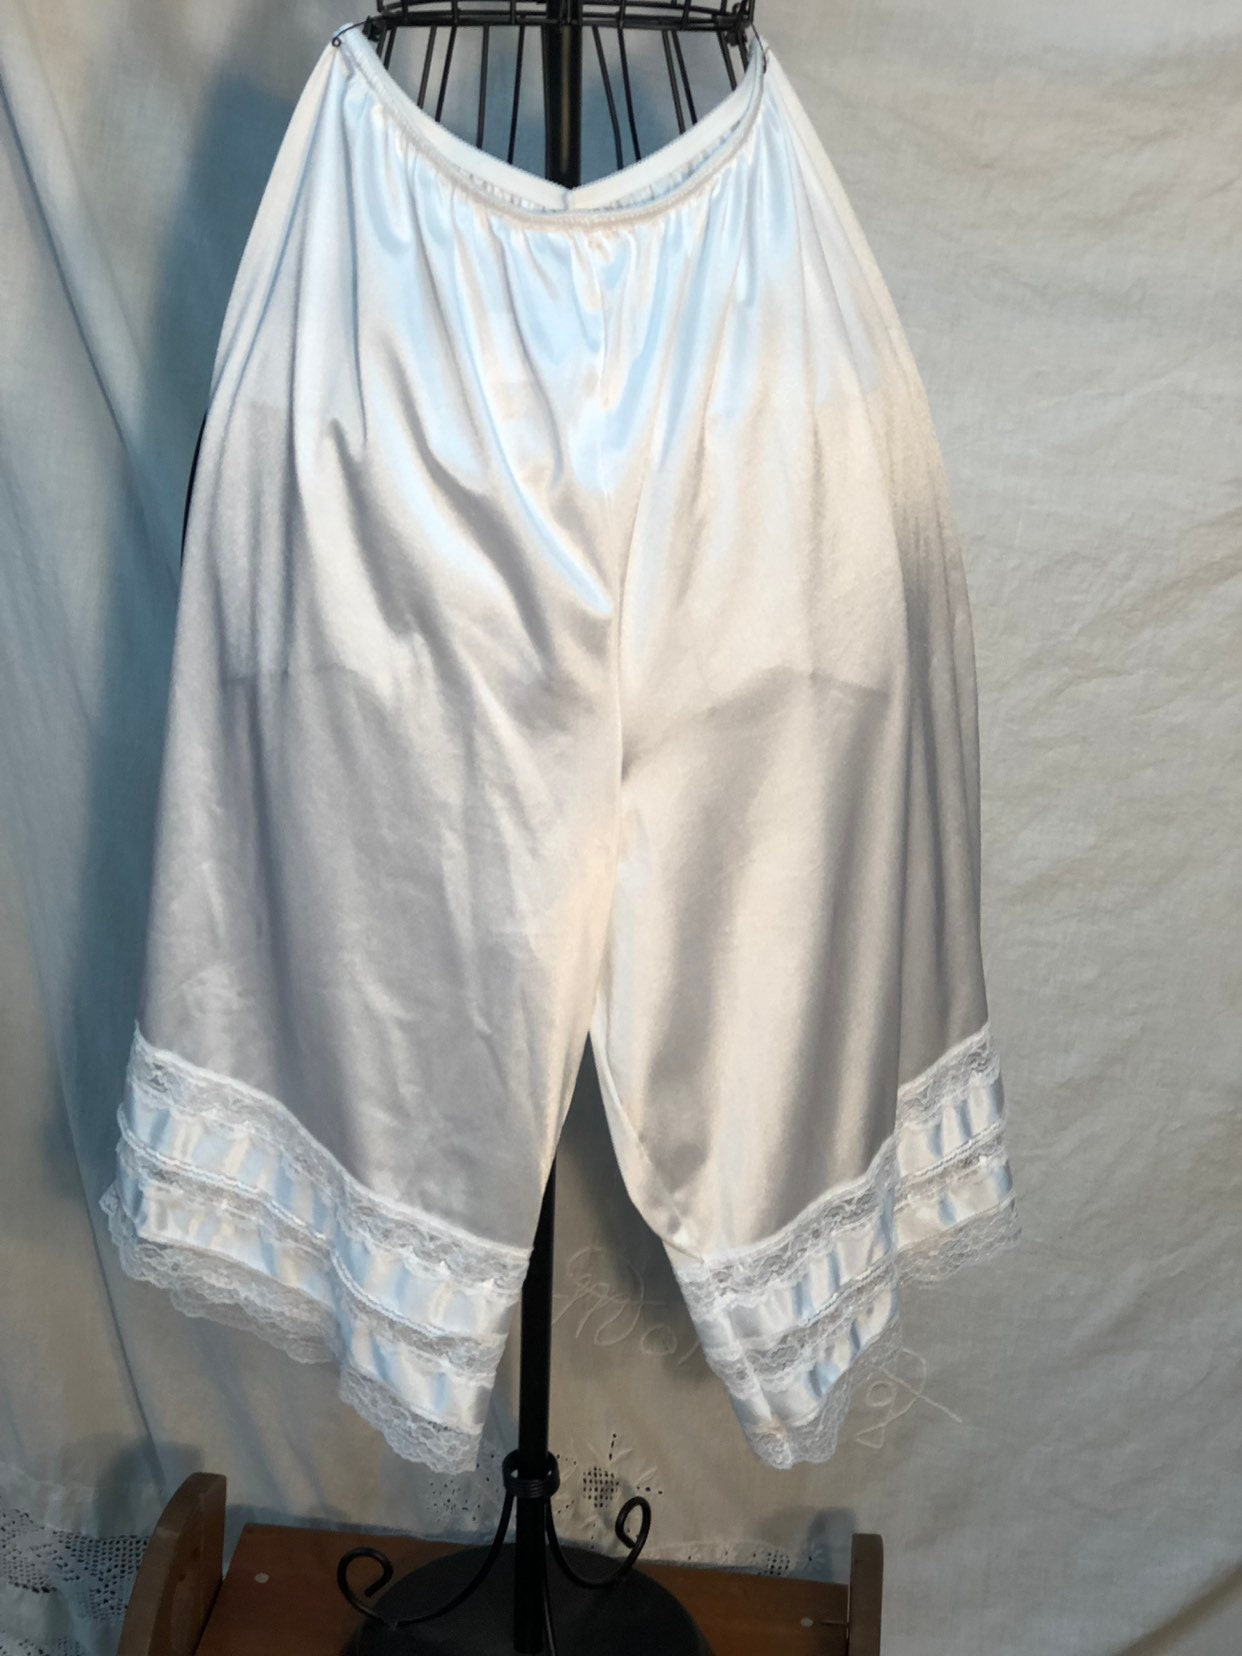 Bloomers Vintage Under Garments White Old Fashioned Womens Knickers